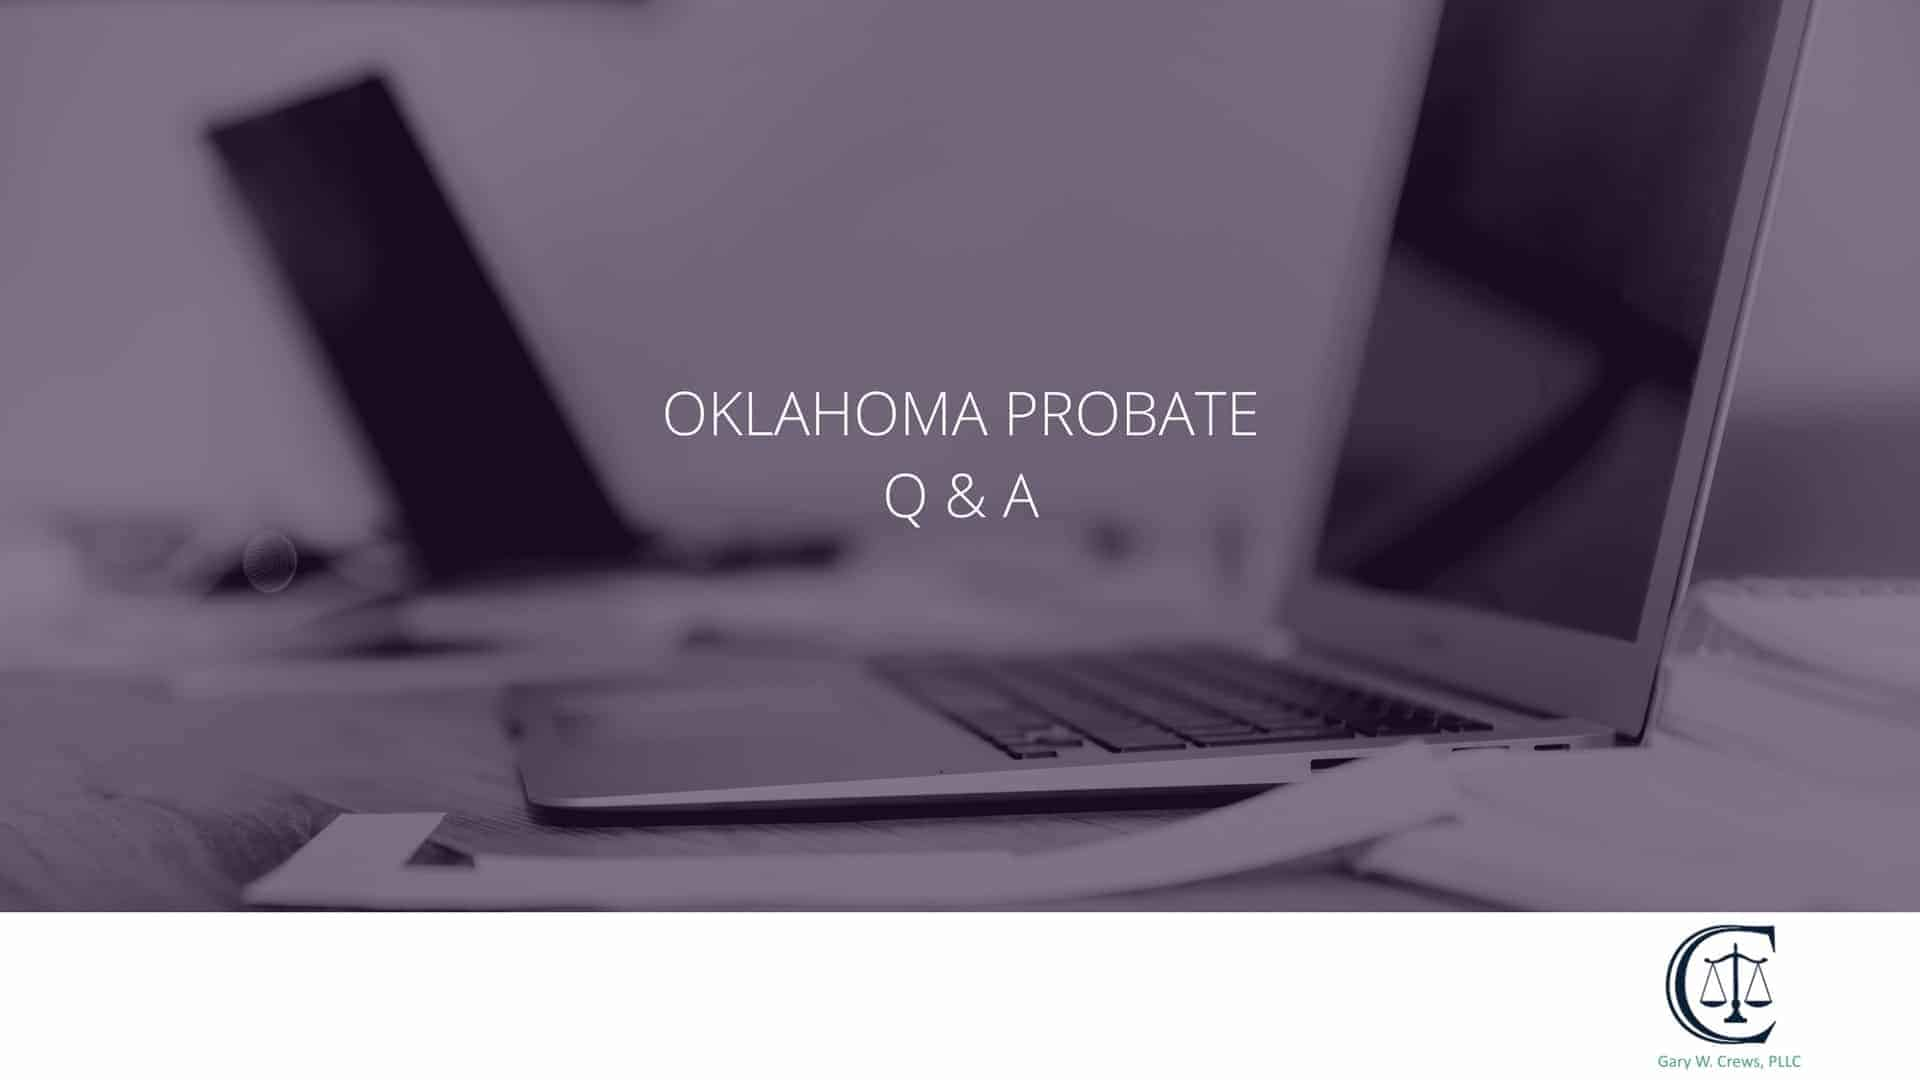 Best Probate Lawyer In Tulsa oklahoma probate q & a part 1 - probate Qa - Oklahoma Probate Q & A Part 1